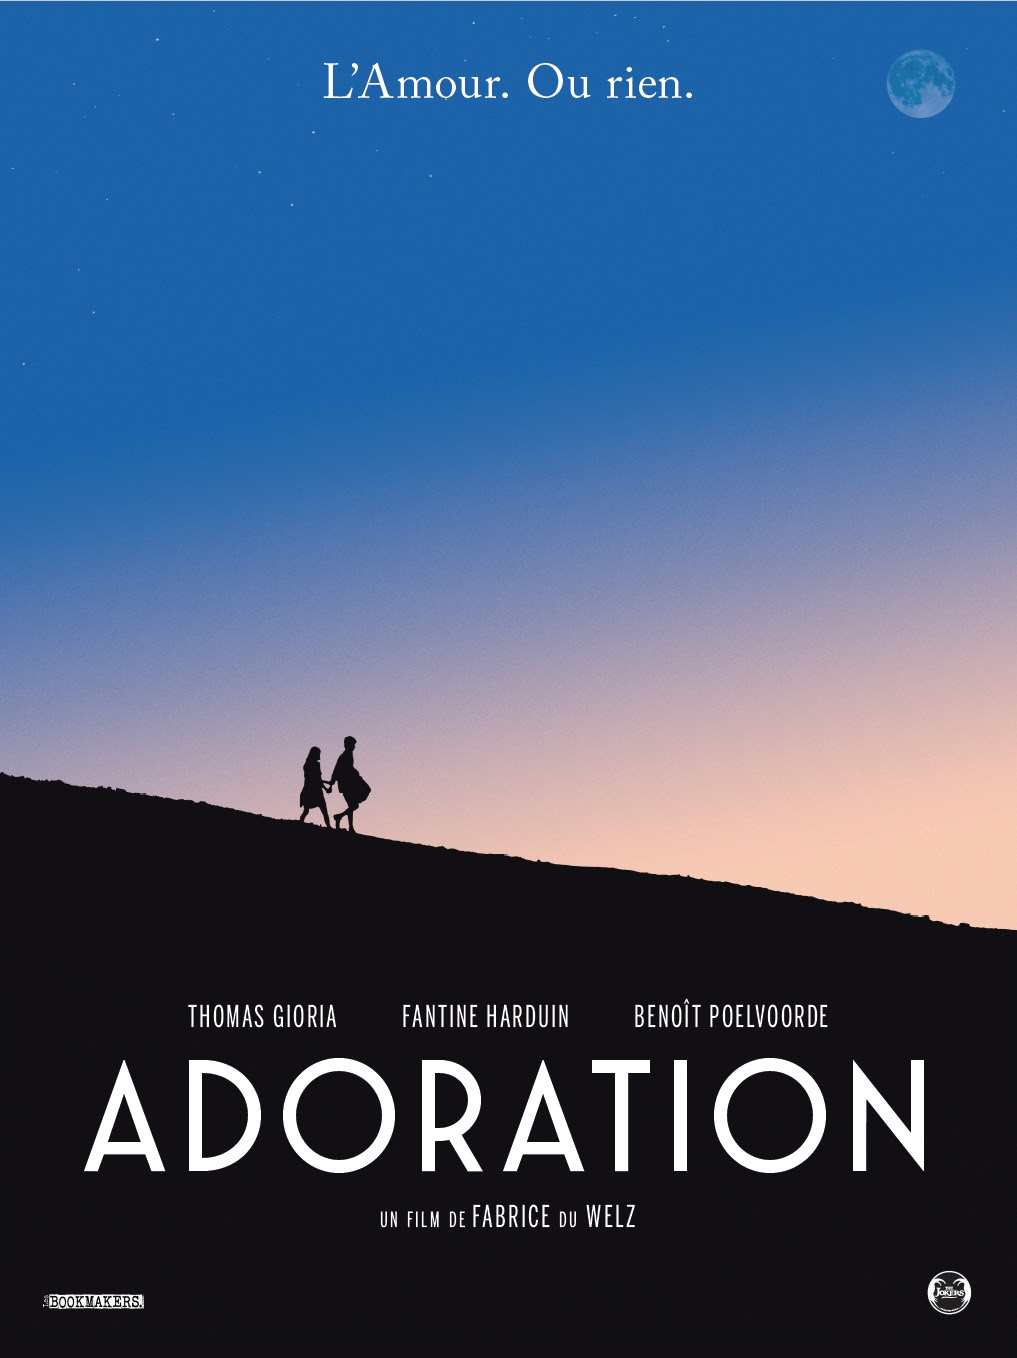 Adoration film review: young love turns sour